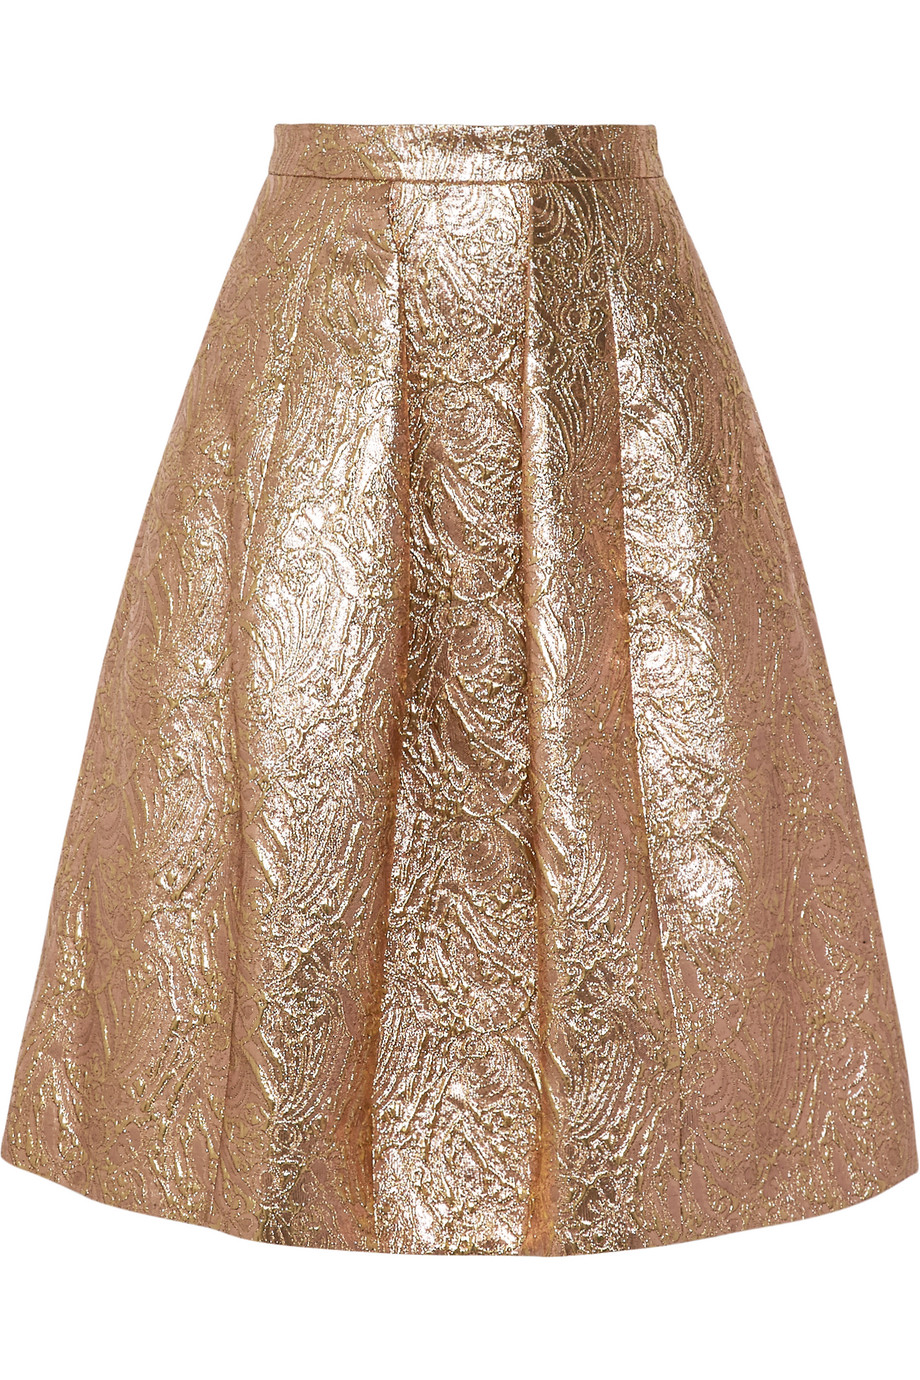 Oscar De La Renta Pleated Metallic Brocade Skirt, Gold, Women's, Size: 2